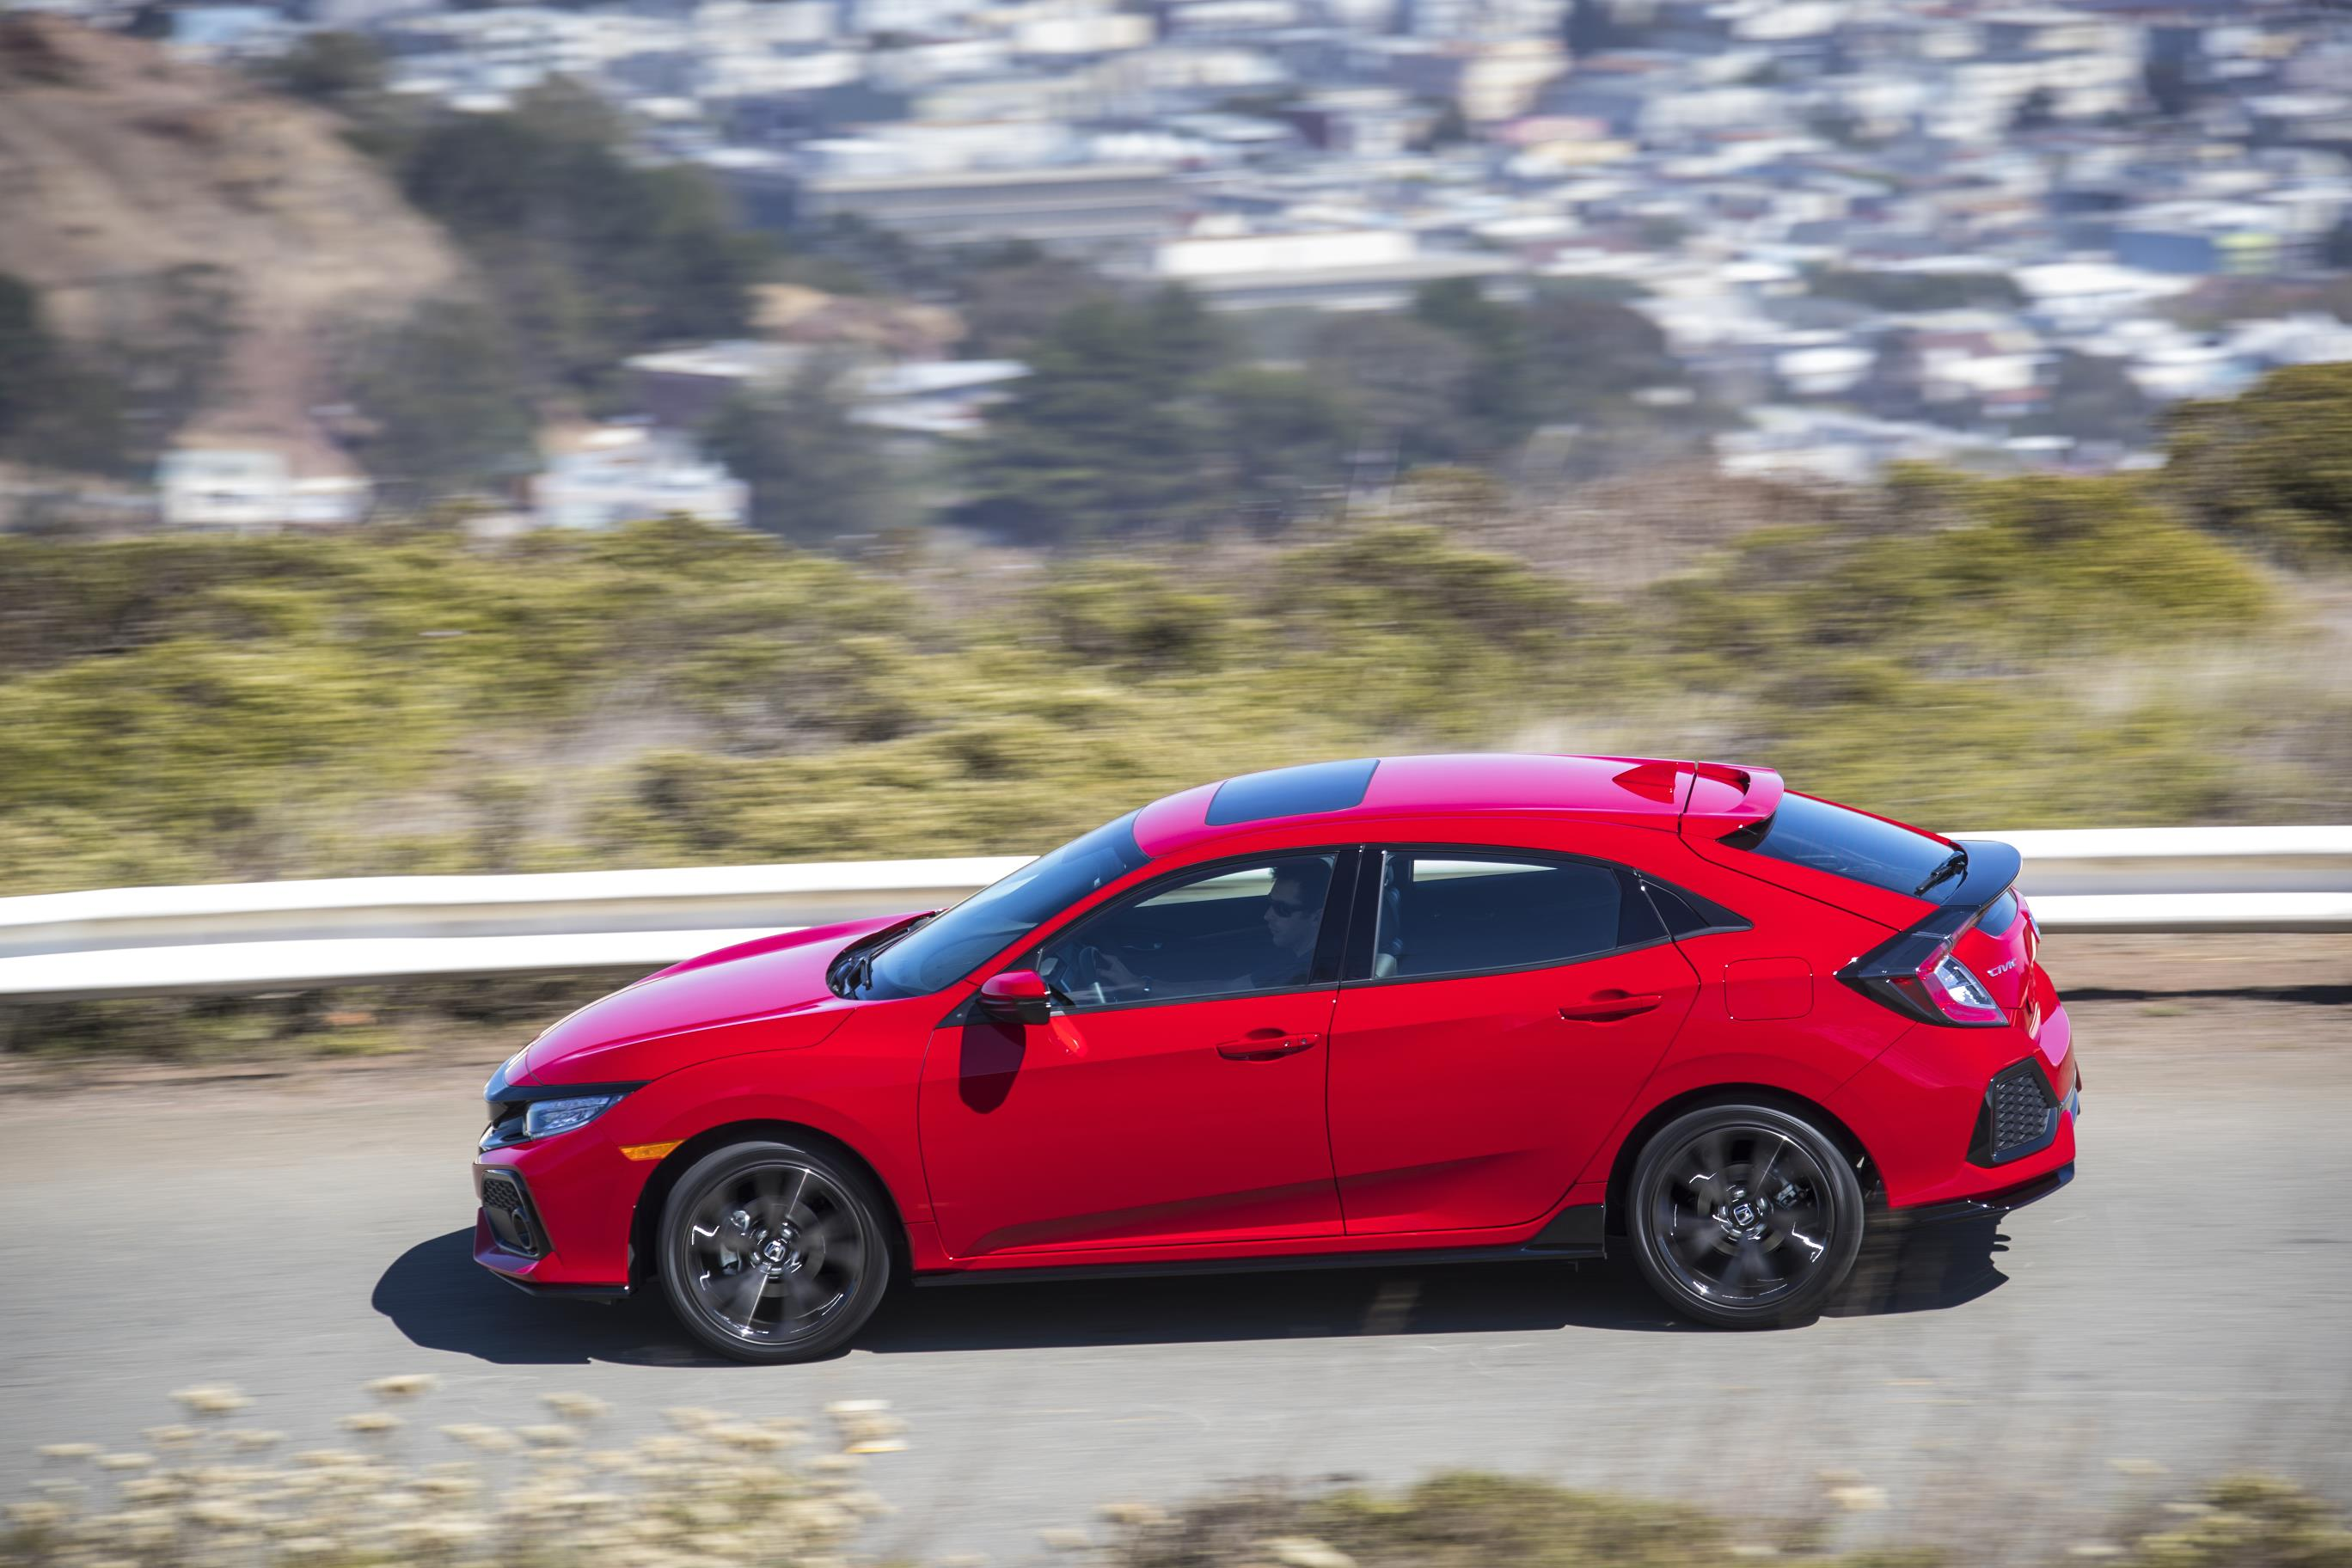 2017 Honda Civic Hatchback Arrives in America, Specs and Pricing Revealed - autoevolution